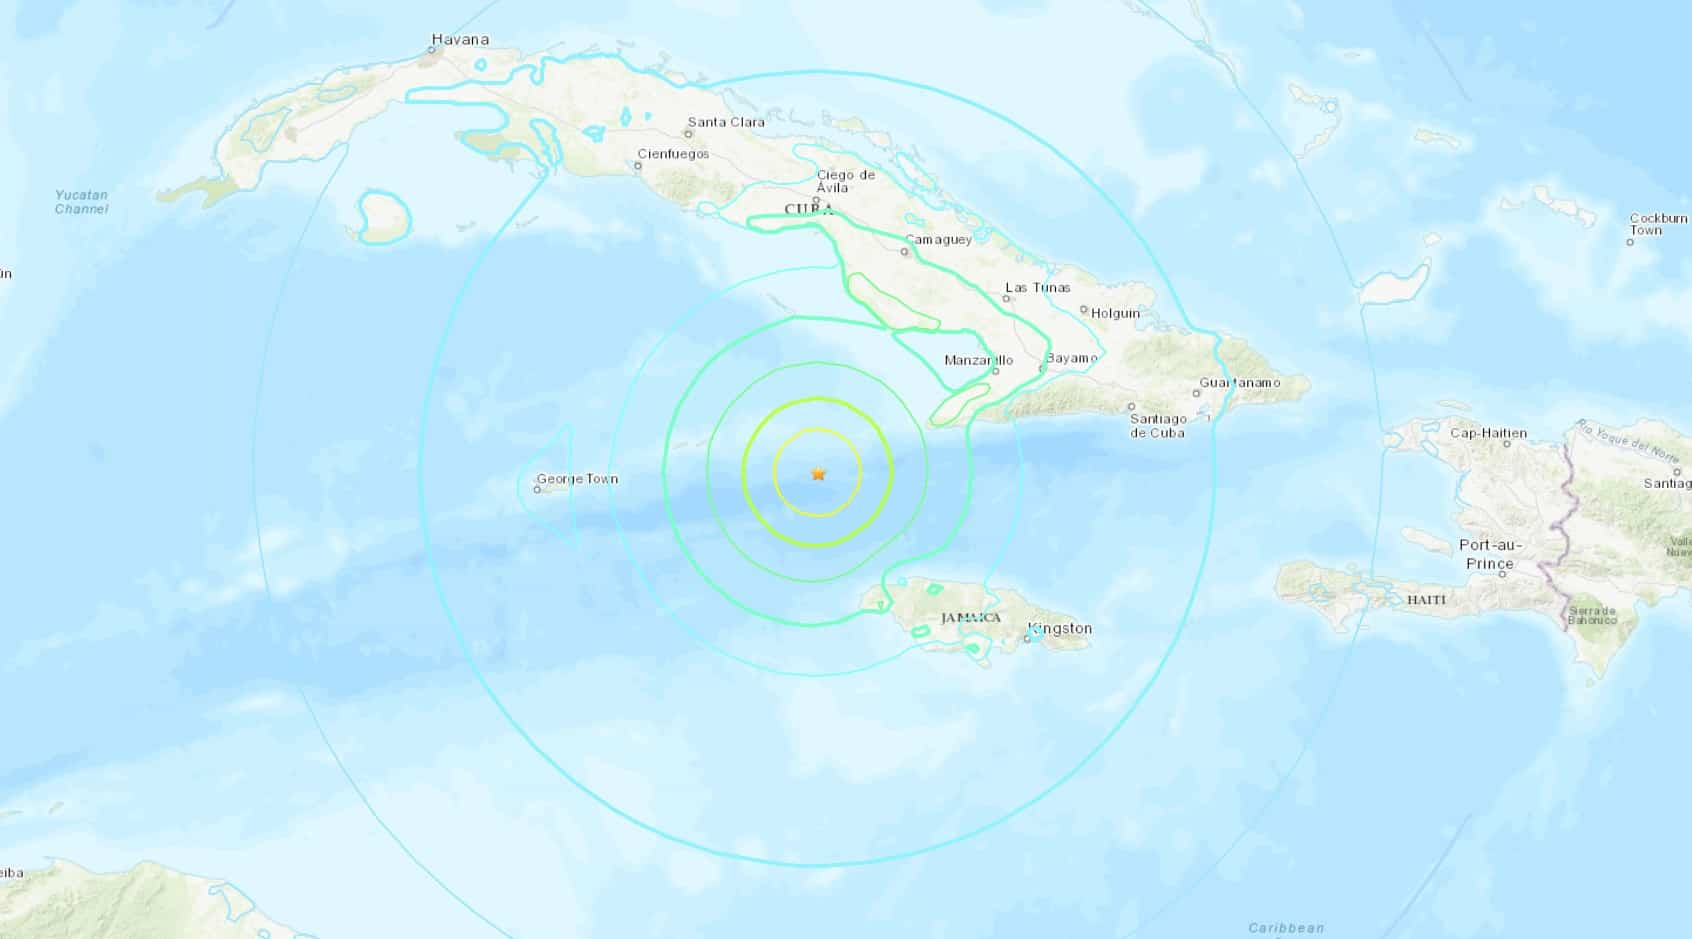 Earthquake Near Jamaica, Caribbean